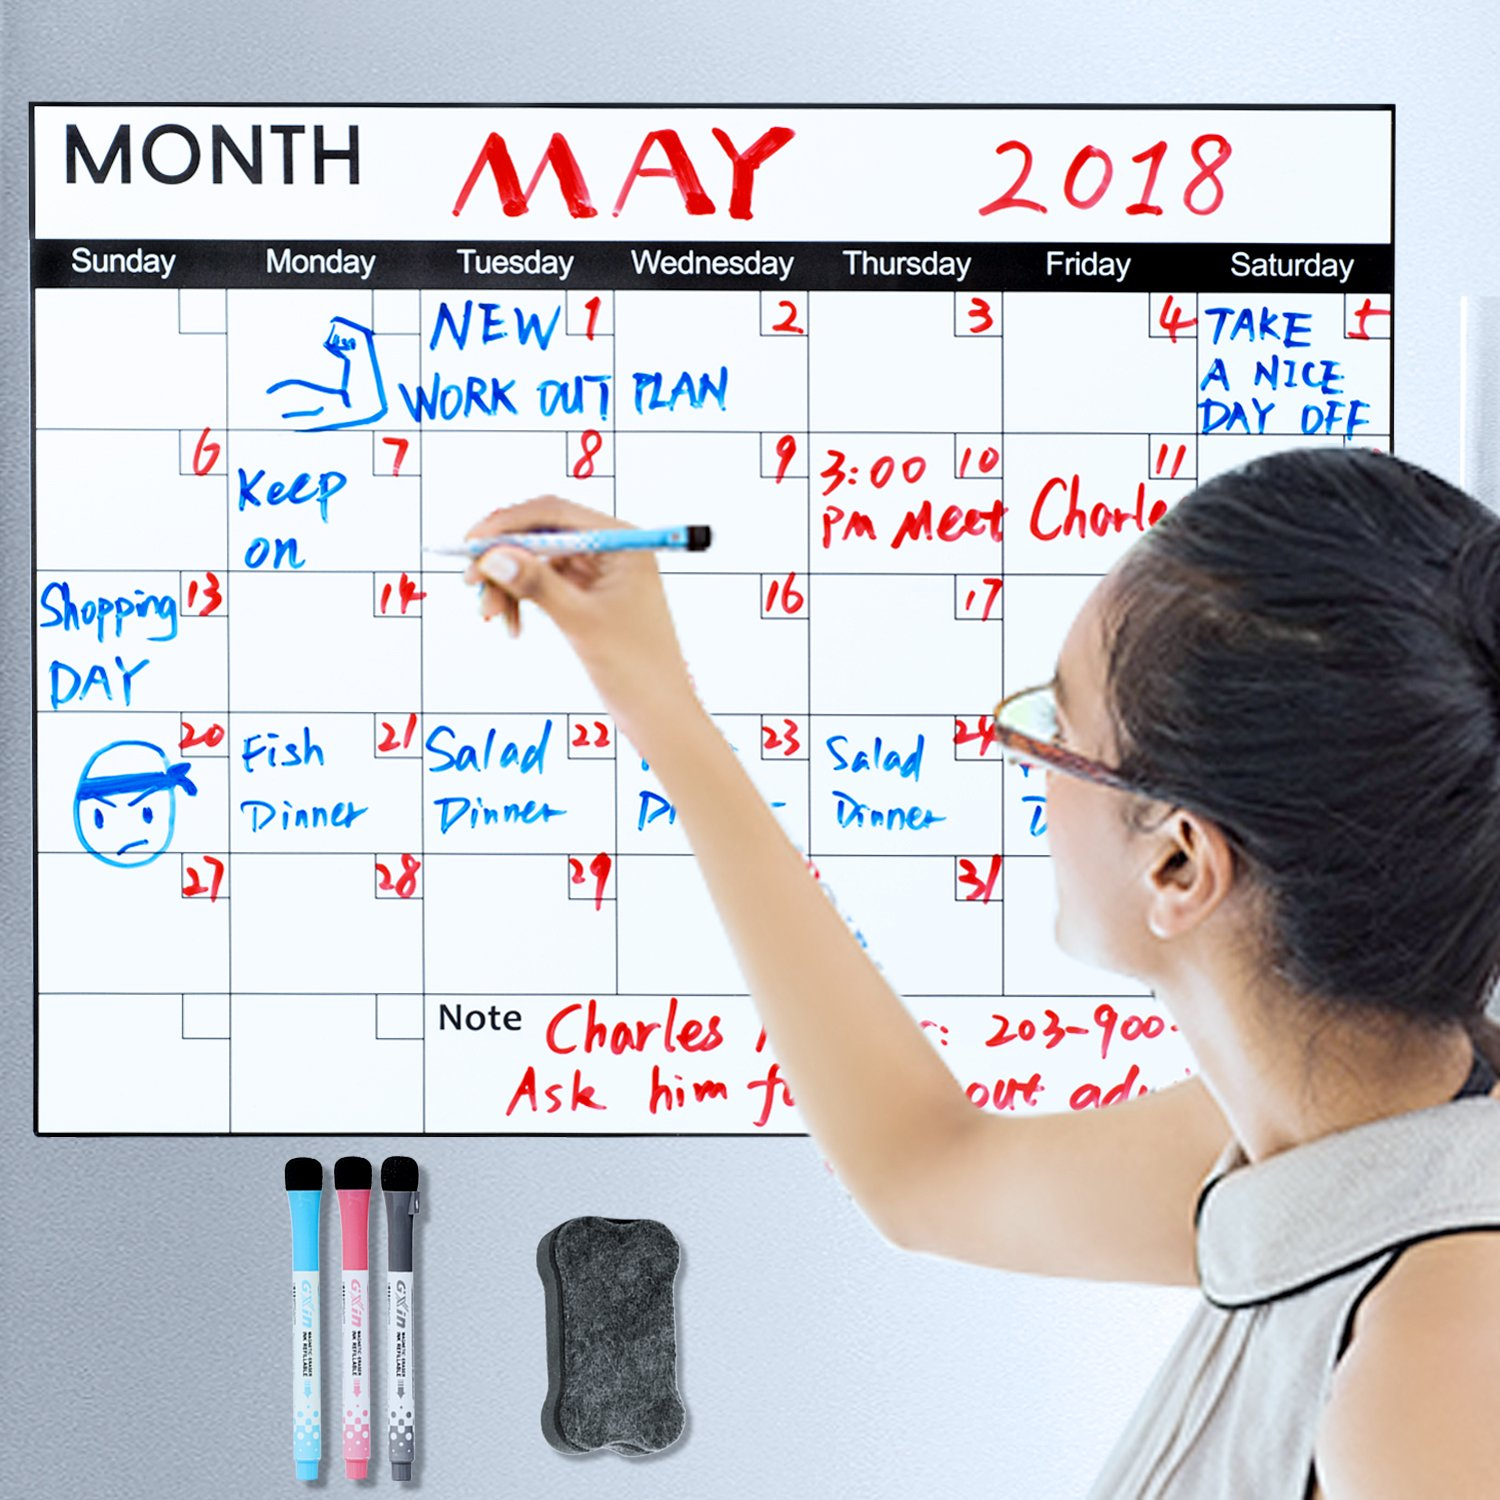 [Upgraded] Magnetic Calendar for Refrigerator, Exwell Erasable 17x13 Magnetic Dry Erase Board, No Water Damage, No Air Bubble, No Small Slit, No Crack, No Wrinkly, 2018 Monthly Calendar